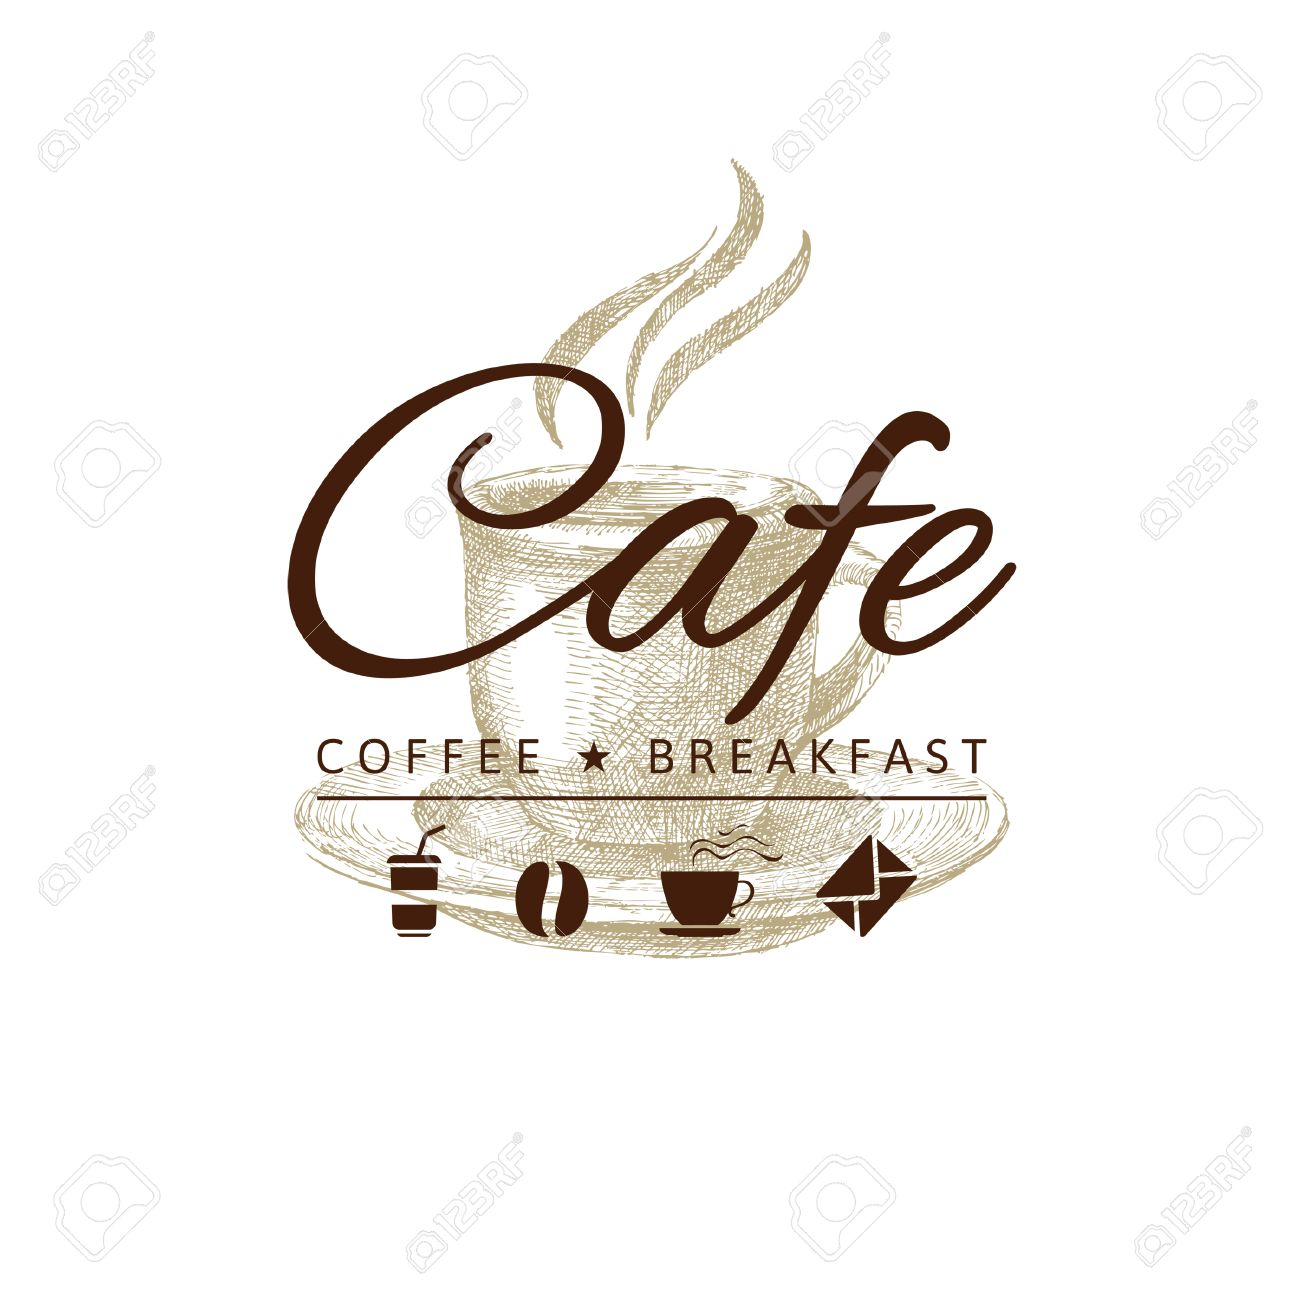 cafe logo with hand drawn coffee cup royalty free cliparts vectors